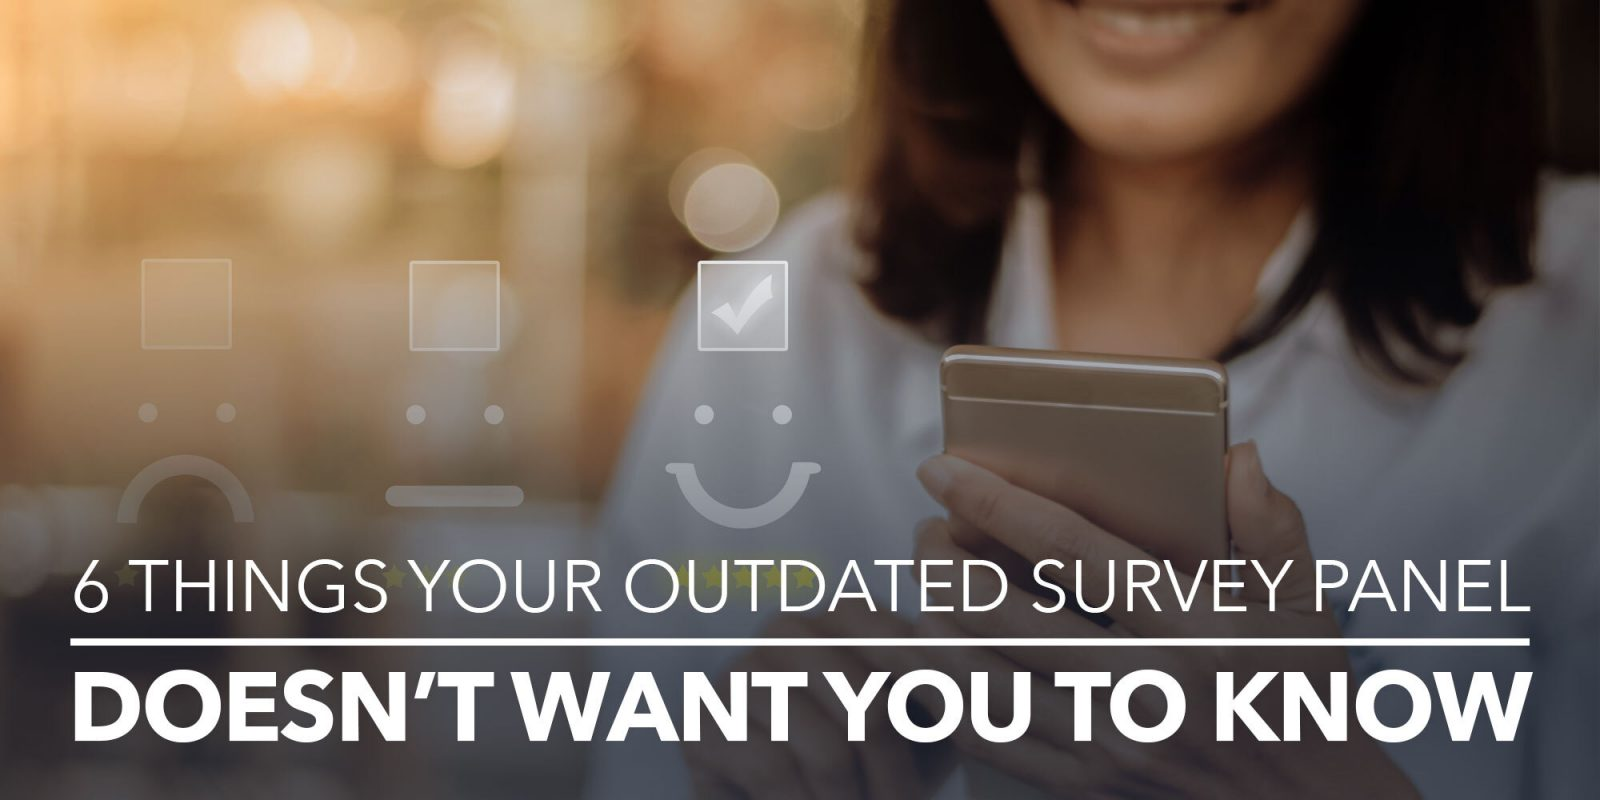 6 things your outdated survey panel doesn't want you to know.